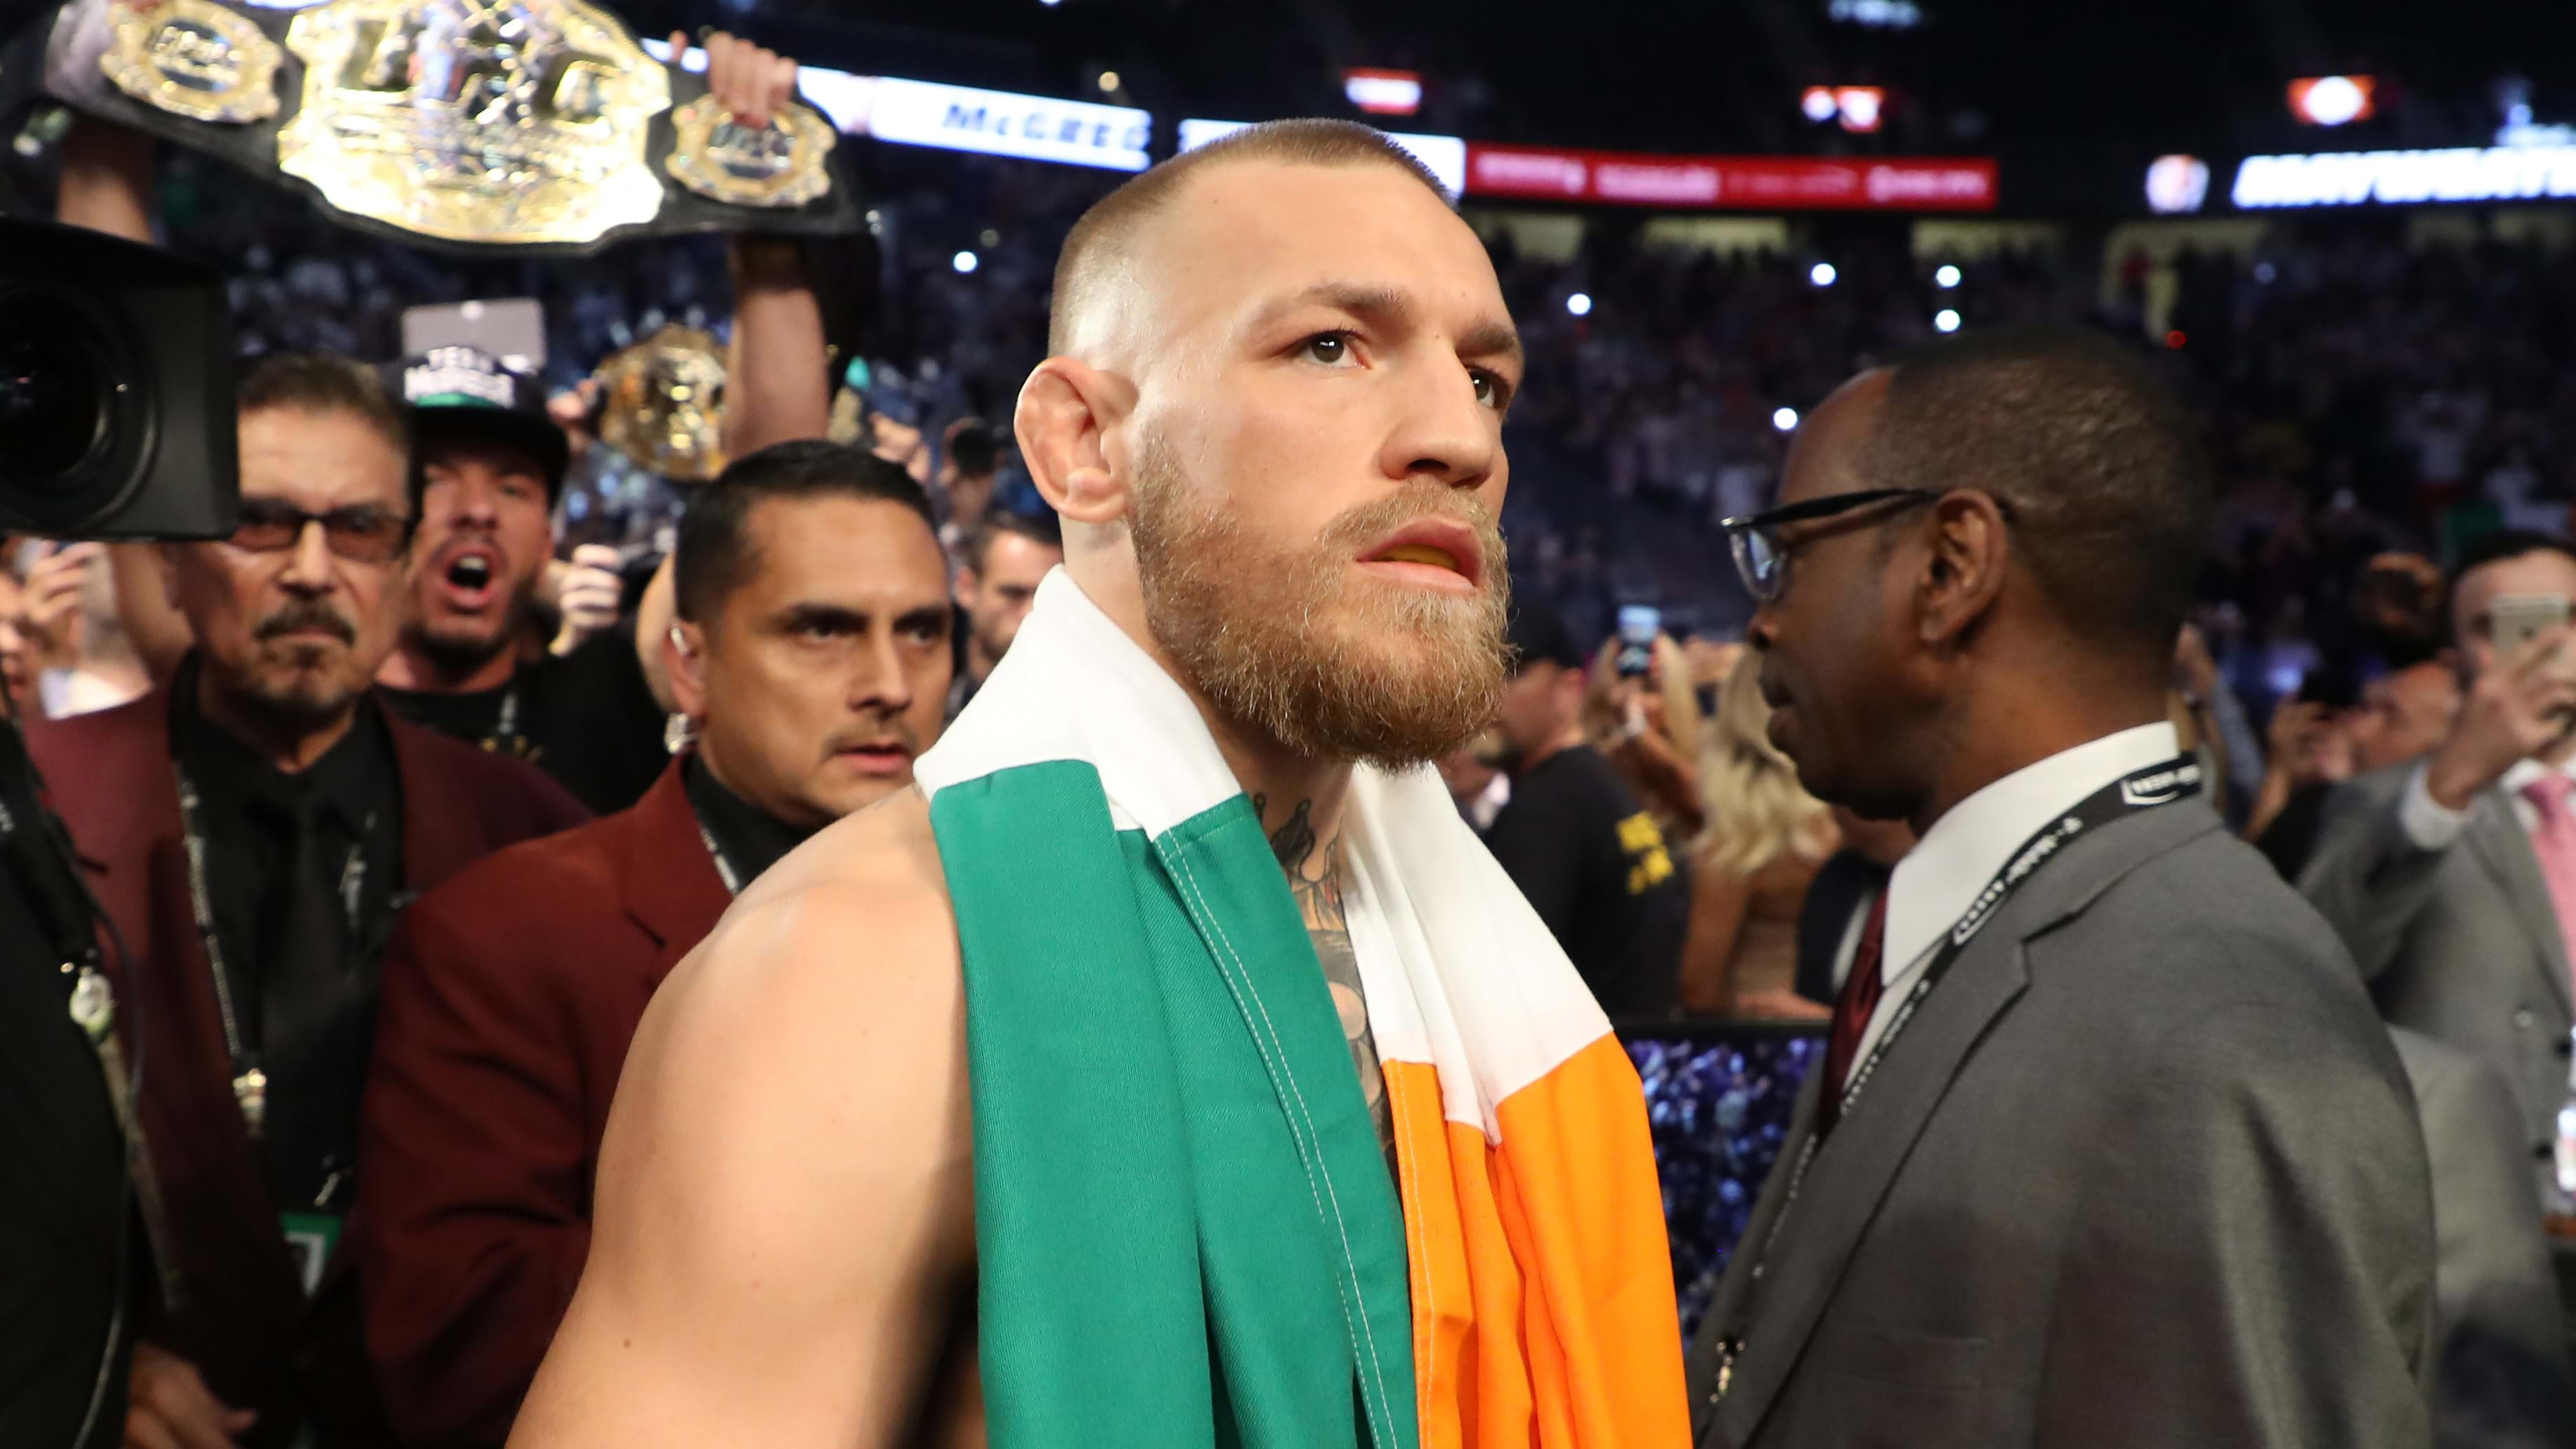 Dana White's conversations with Conor McGregor appear to be getting more positive